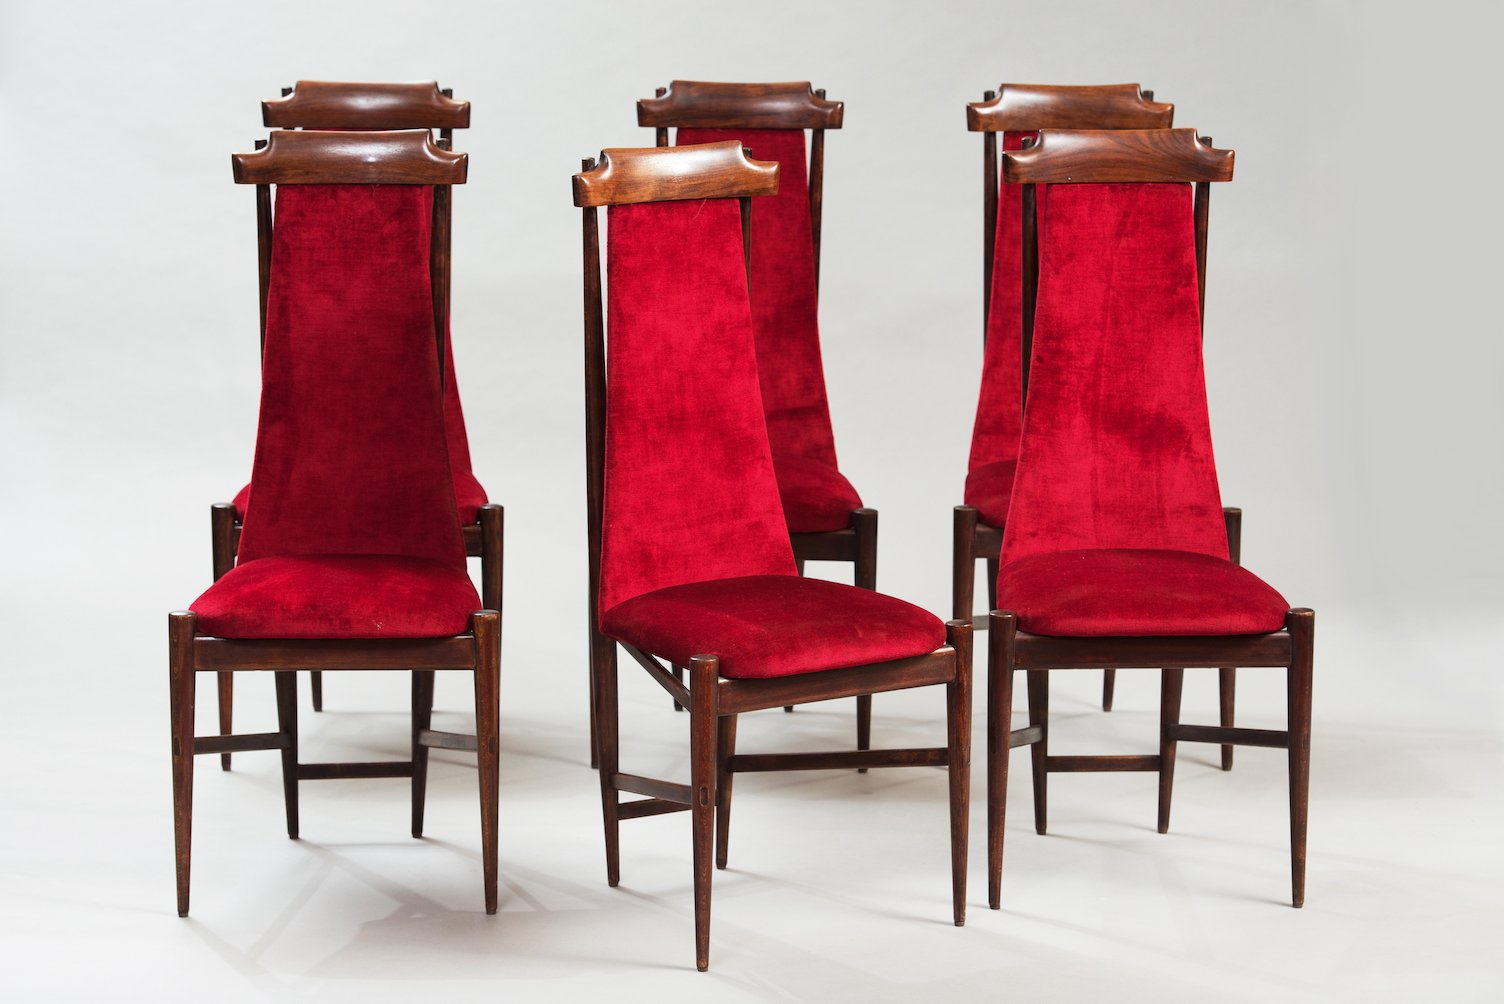 high back dining chairs chair meditation posture set of 6 for sale at pamono